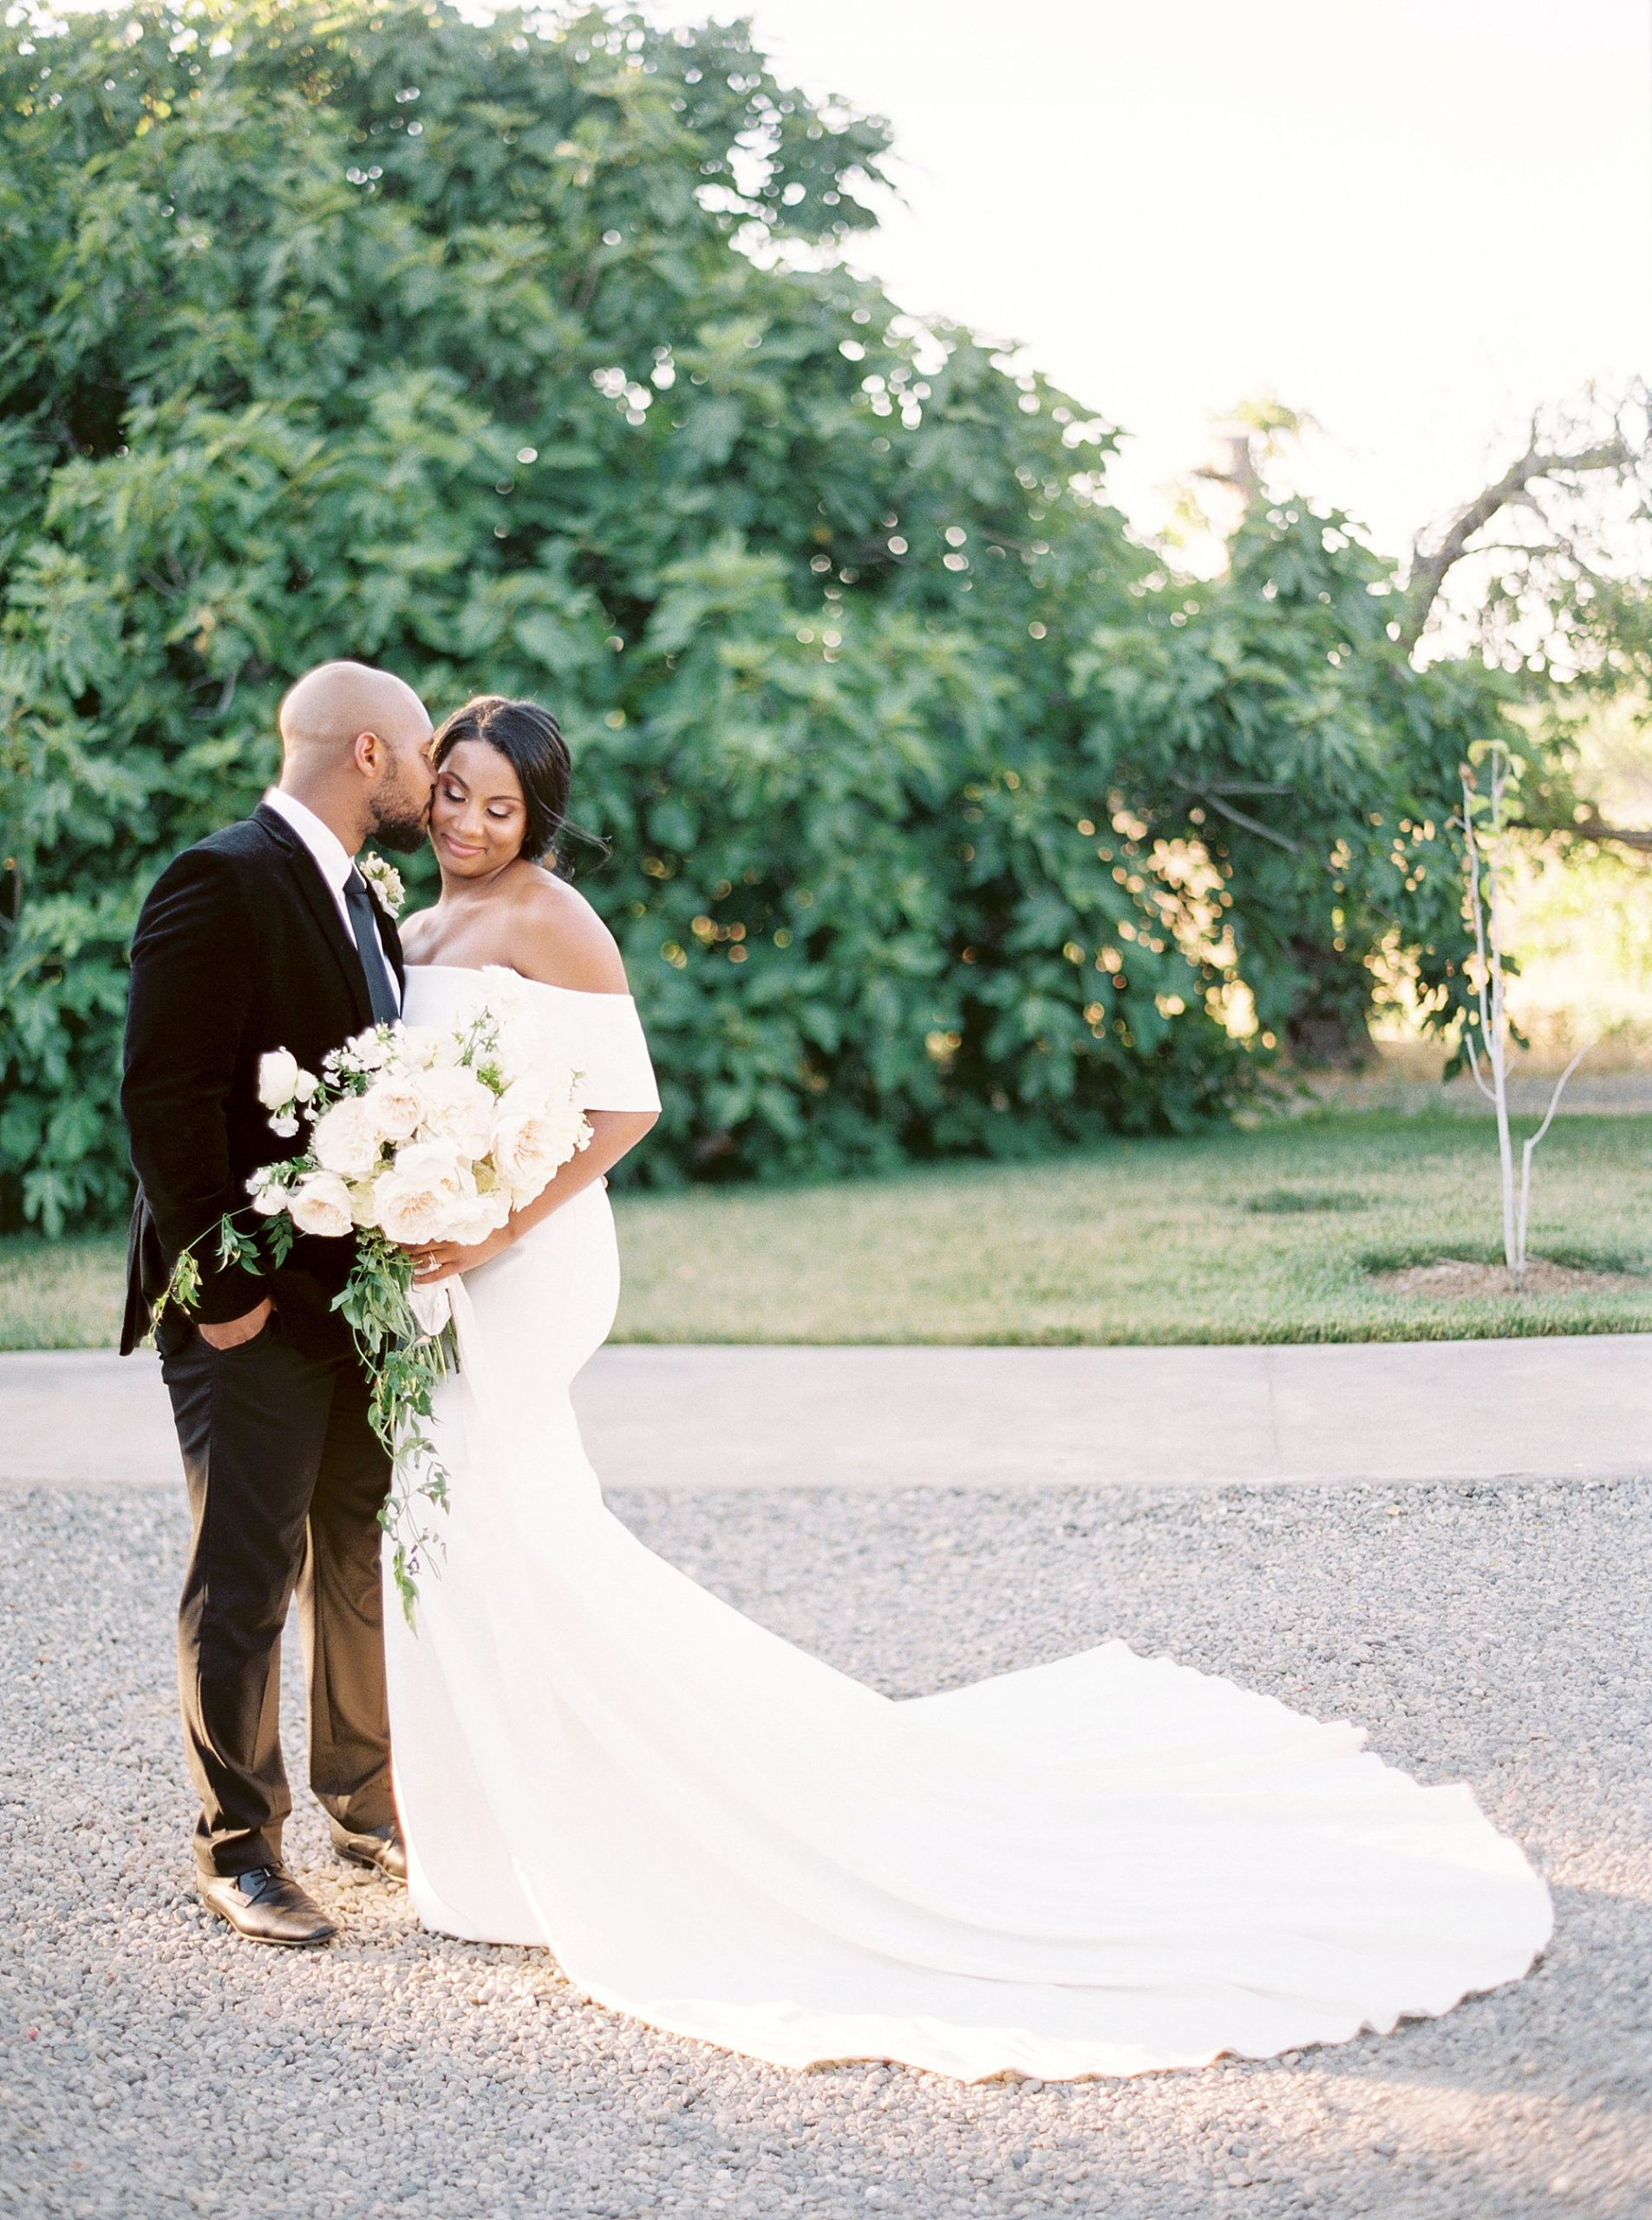 Park Winters Micro-Wedding Inspiration on Style Me Pretty - Stephanie Teague Events - Ashley Baumgartner - Park Winters Wedding - Black Tie Wedding - Micro-Wedding Sacramento Photographer_0022.jpg